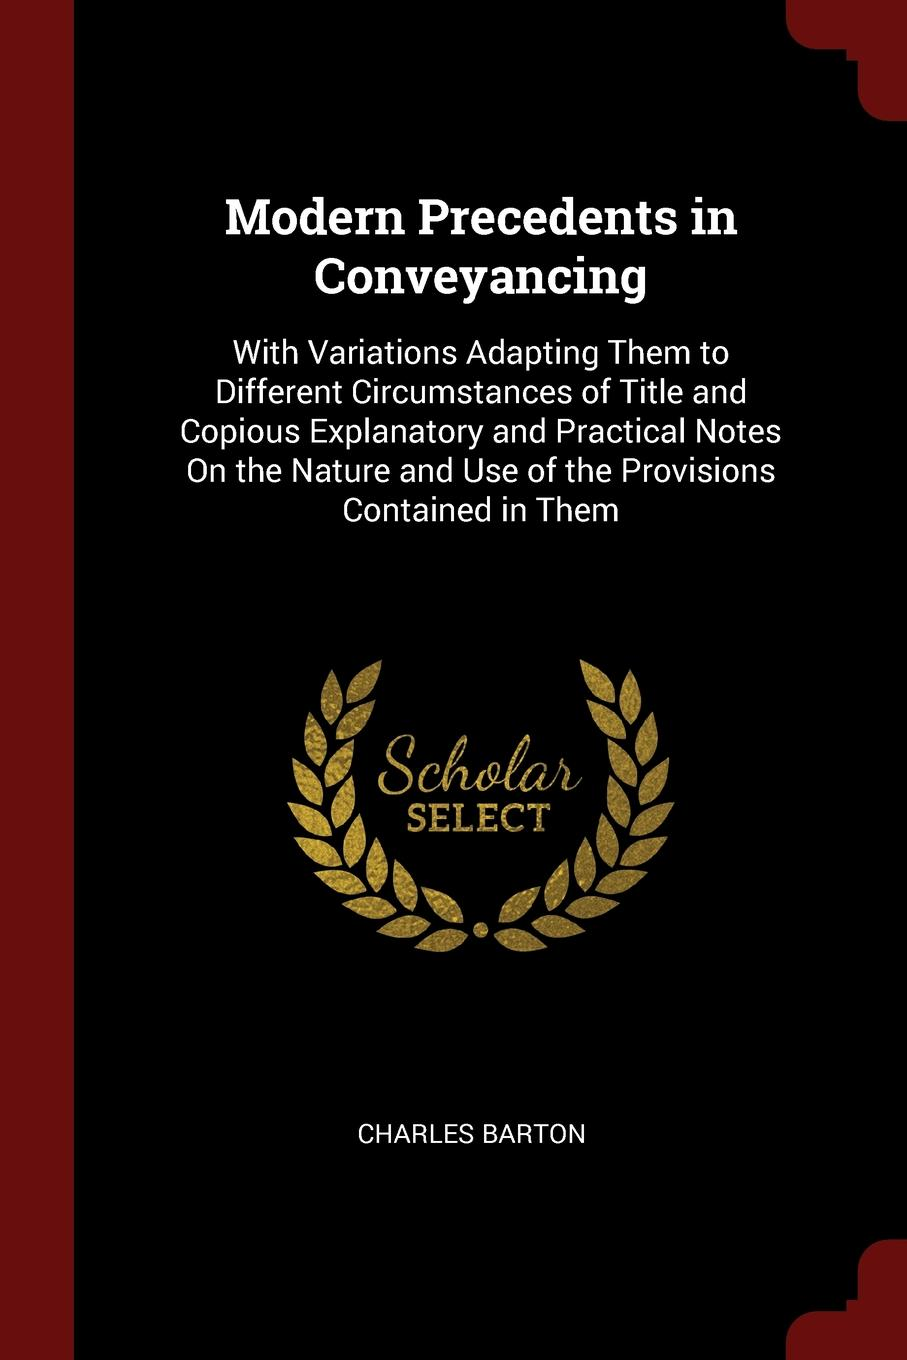 Charles Barton Modern Precedents in Conveyancing. With Variations Adapting Them to Different Circumstances of Title and Copious Explanatory Practical Notes On the Nature Use Provisions Contained